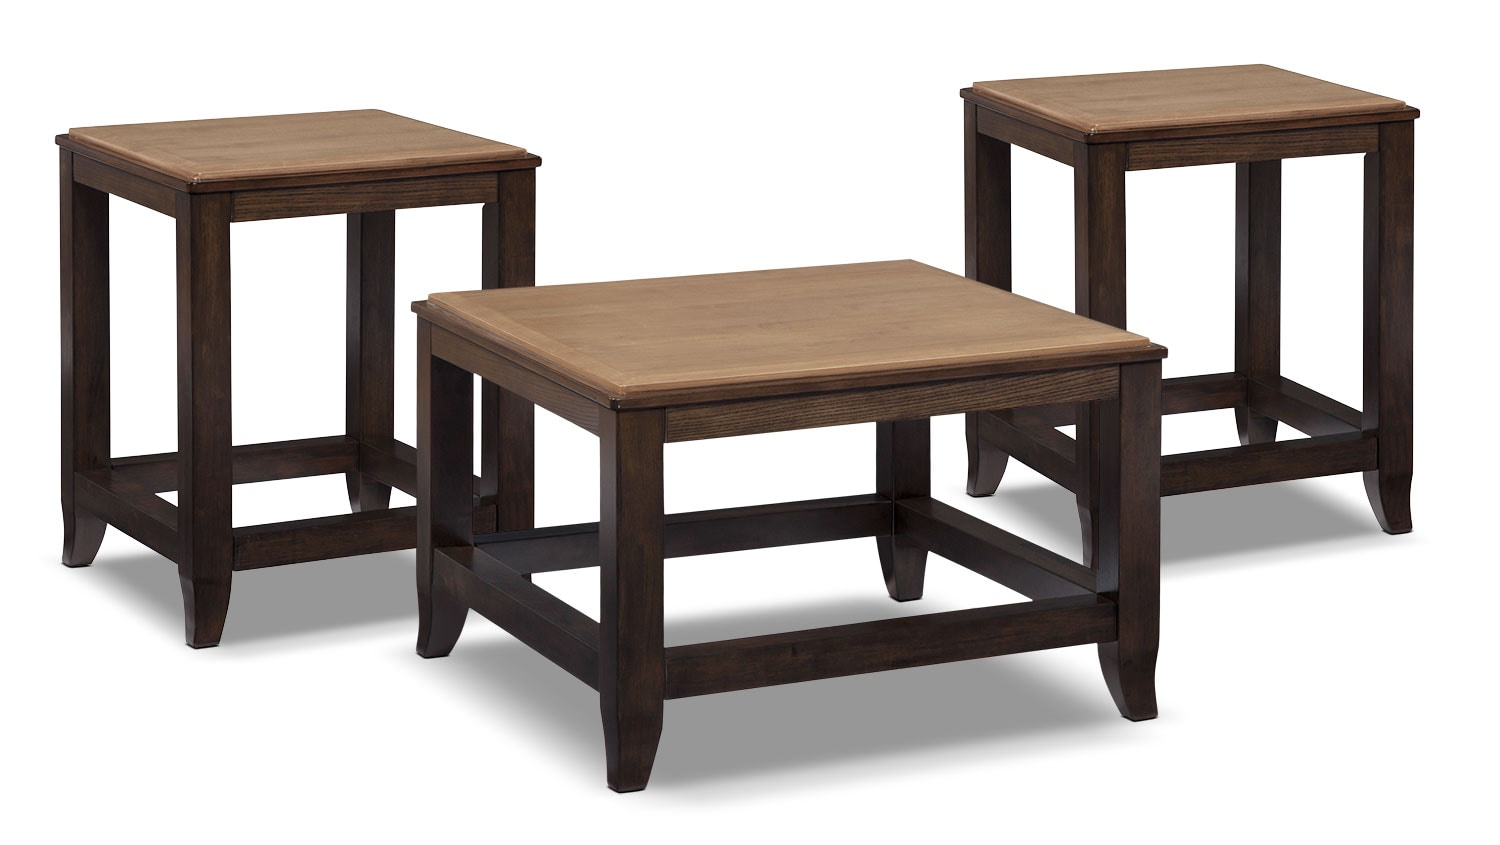 Accent and Occasional Furniture - Oslo 3-Piece Coffee and 2 End Tables Package